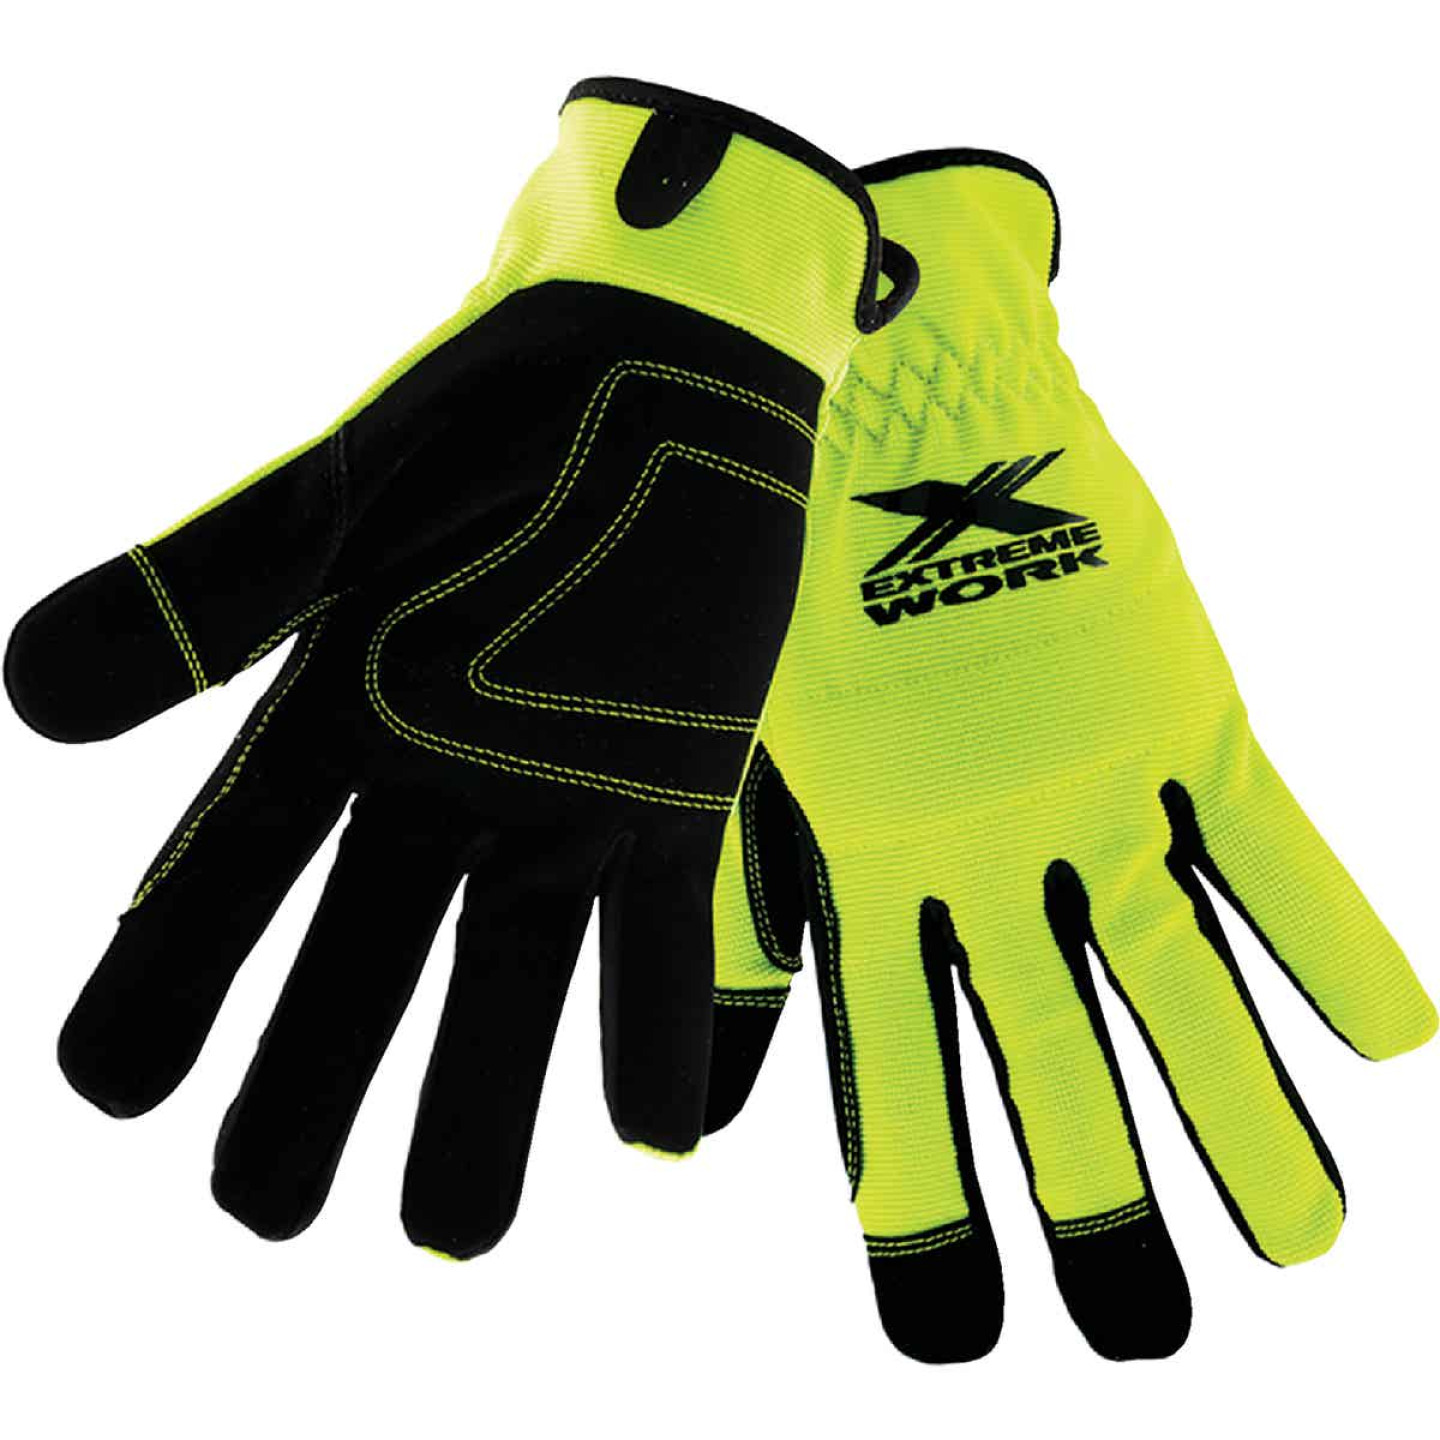 West Chester Protective Gear Extreme Work Men's Medium Synthetic Leather High Performance Glove Image 1